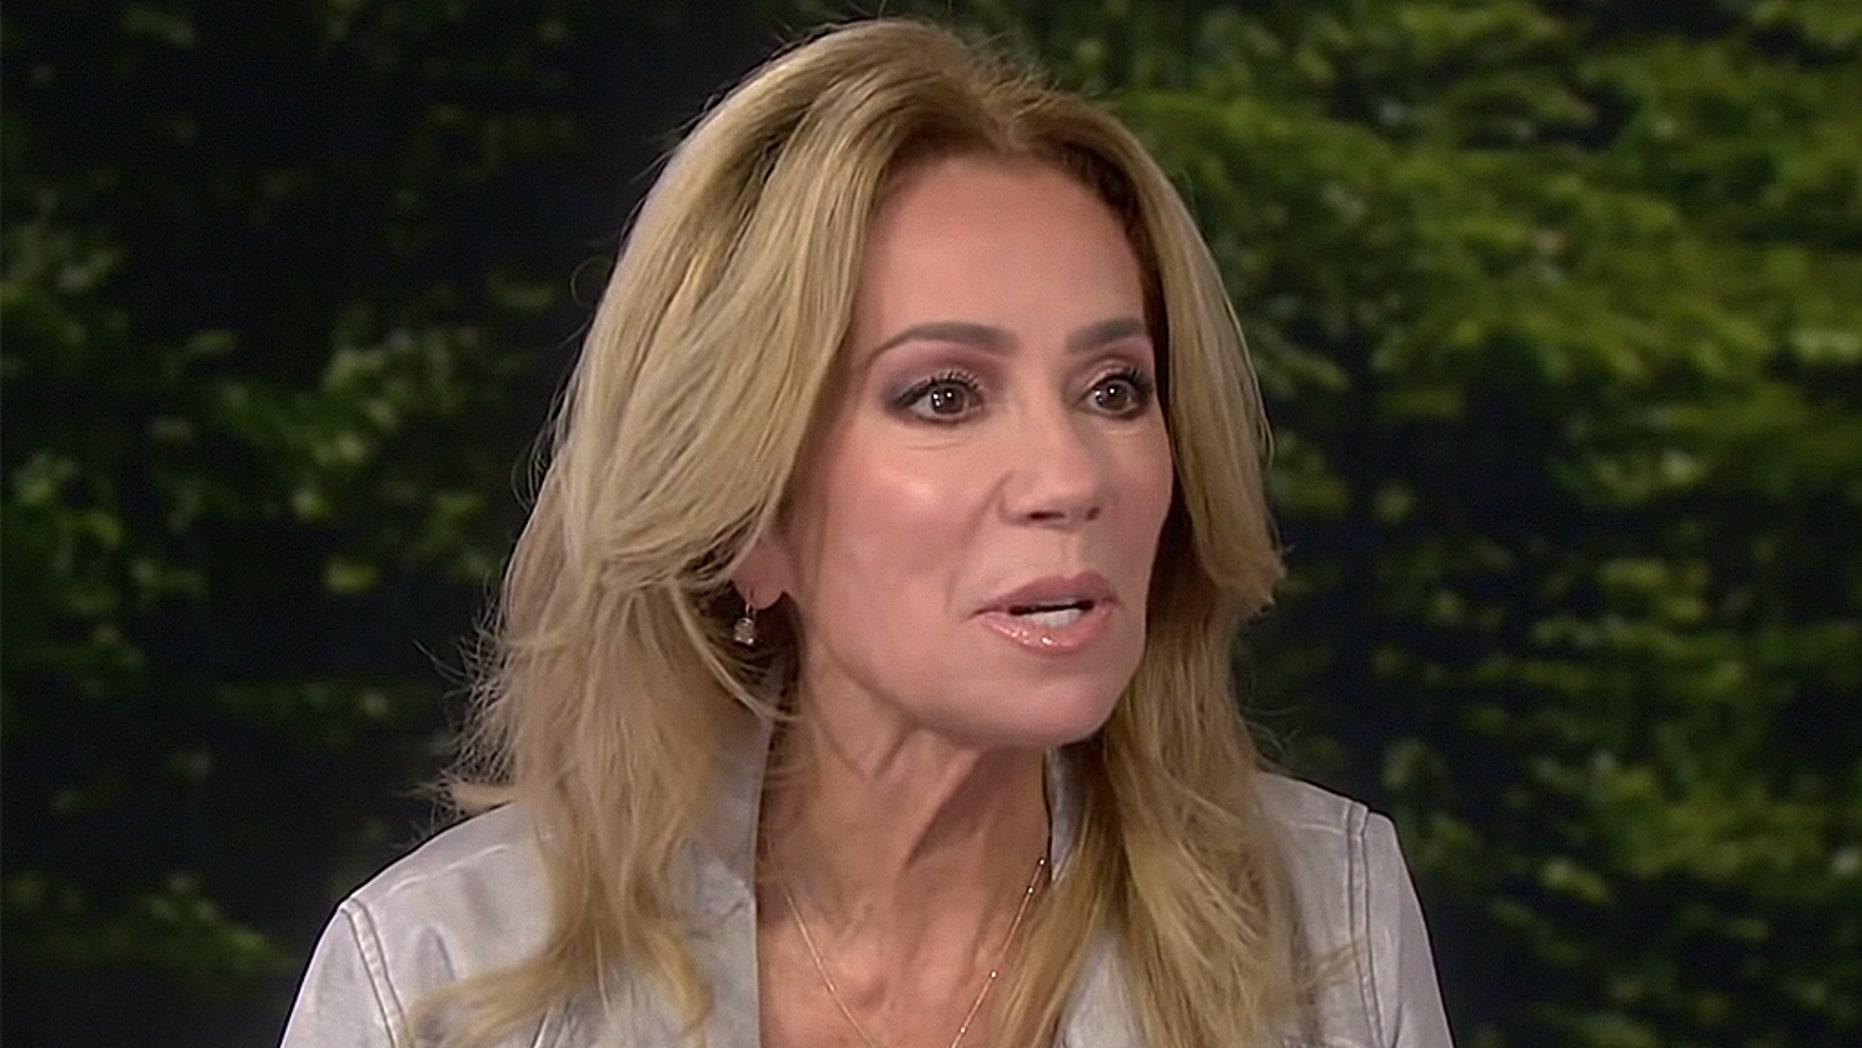 Kathie Lee Gifford Leaving NBC 'Today Show' After More Than a Decade